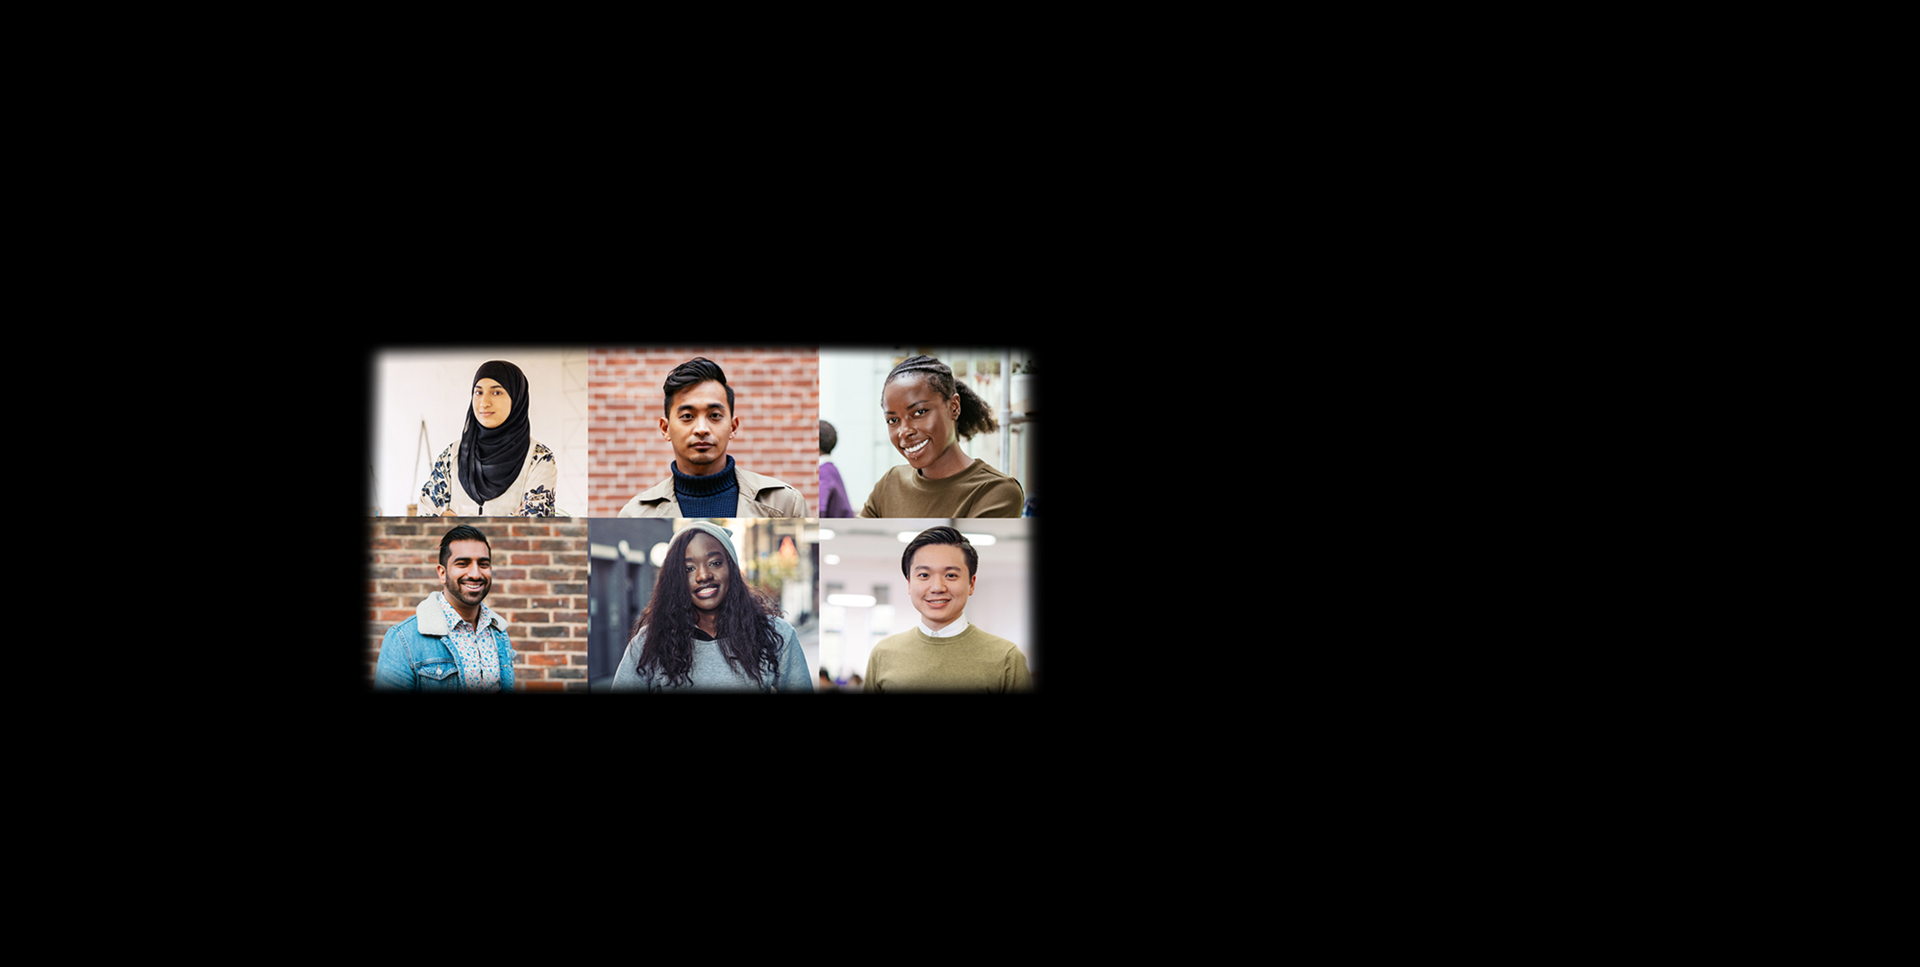 Doing Better: Increasing Diversity in Clinical Trials